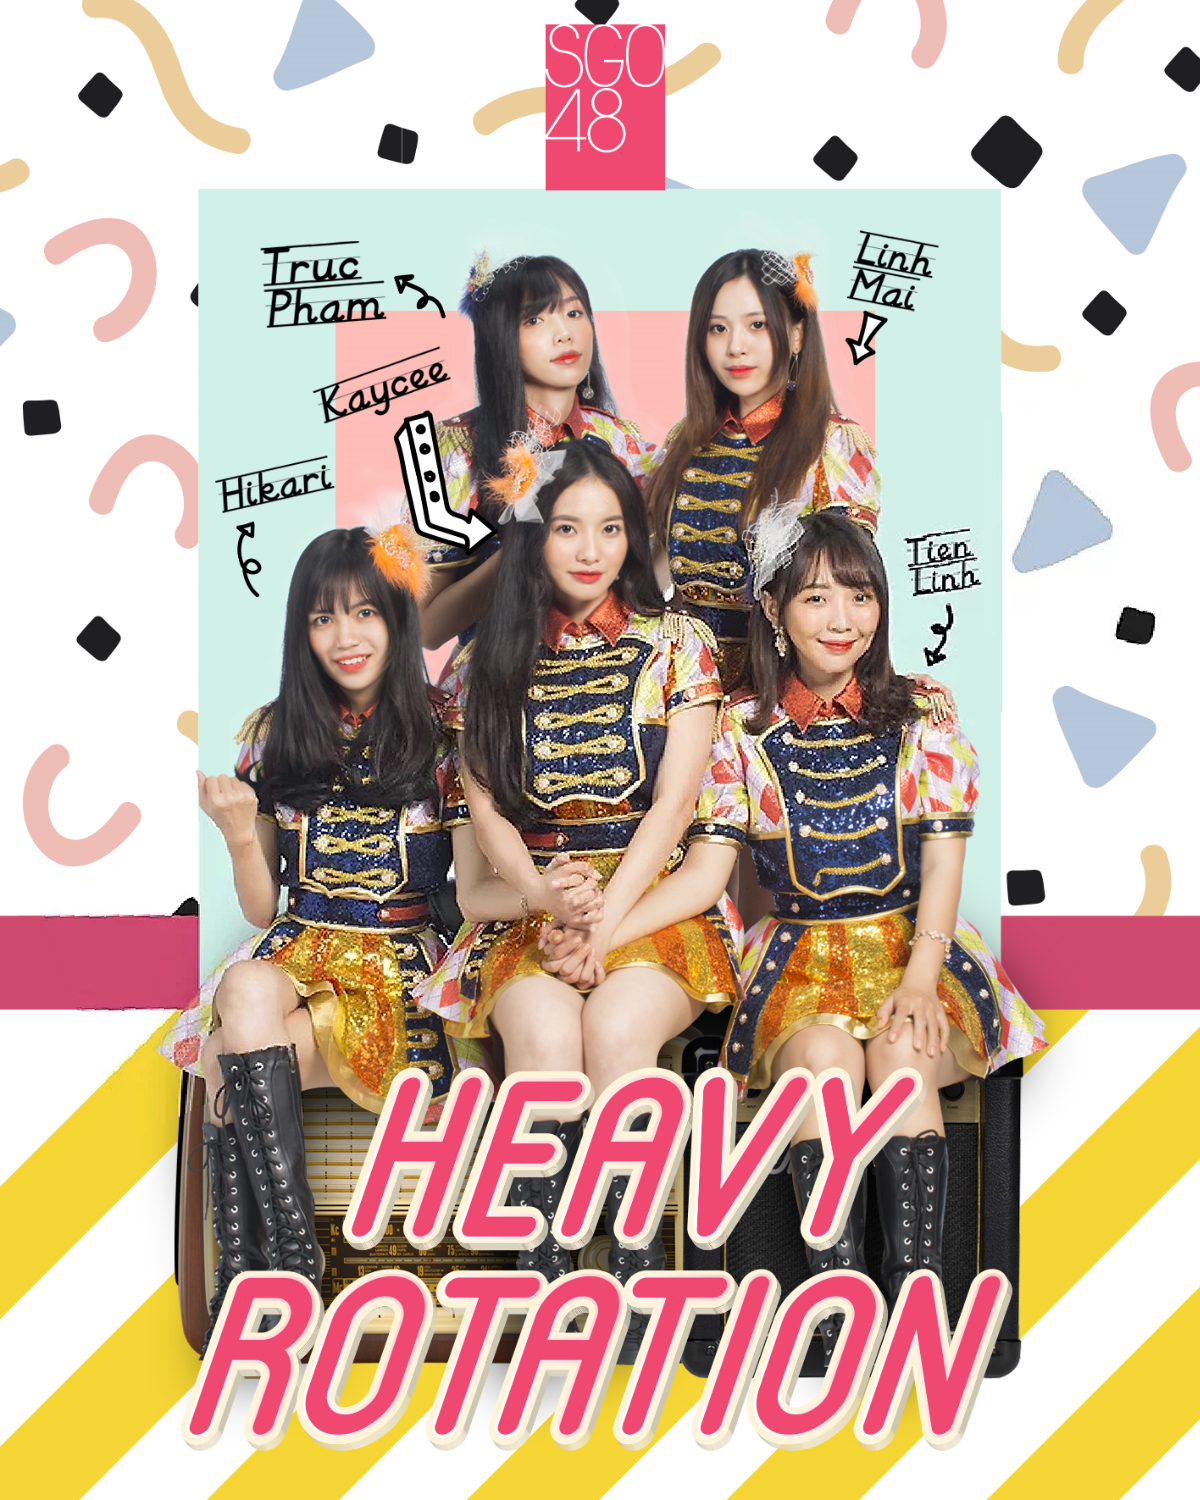 Heavy Rotation (SGO48 Single)